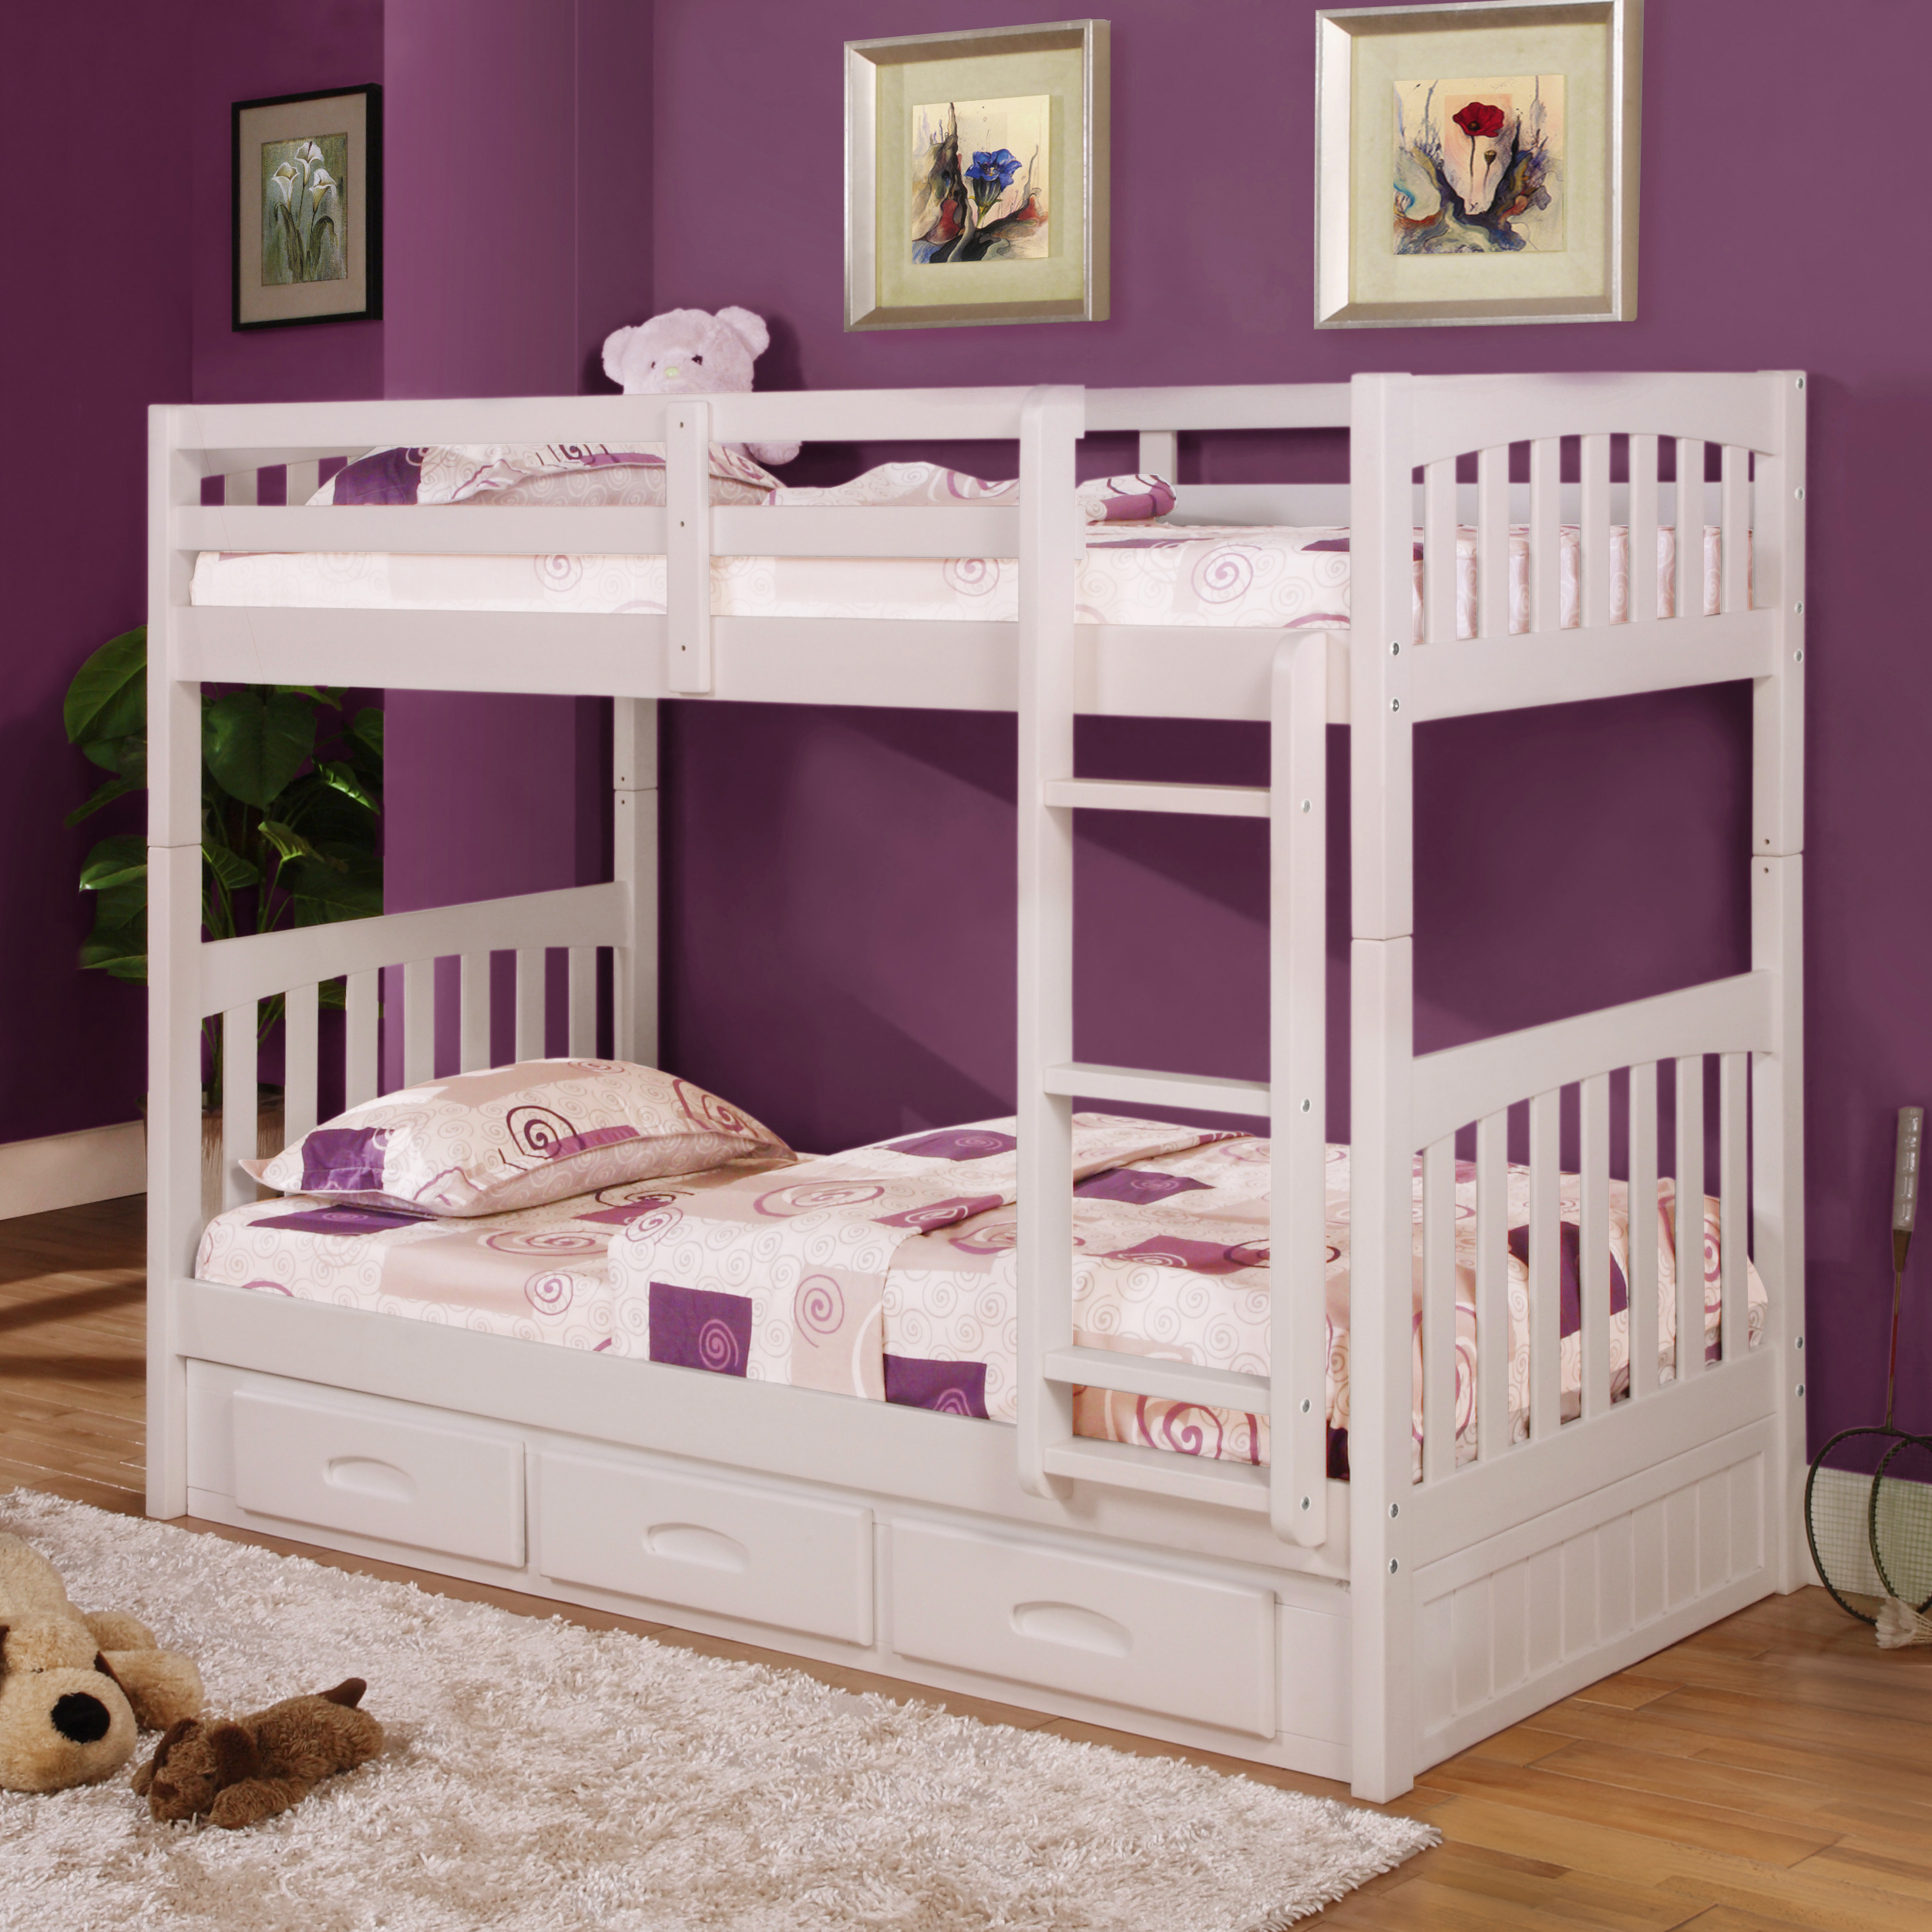 American Furniture Classics Model 0210-TTW, Solid Pine Twin/Twin Bunk Bed with Three Drawers in White